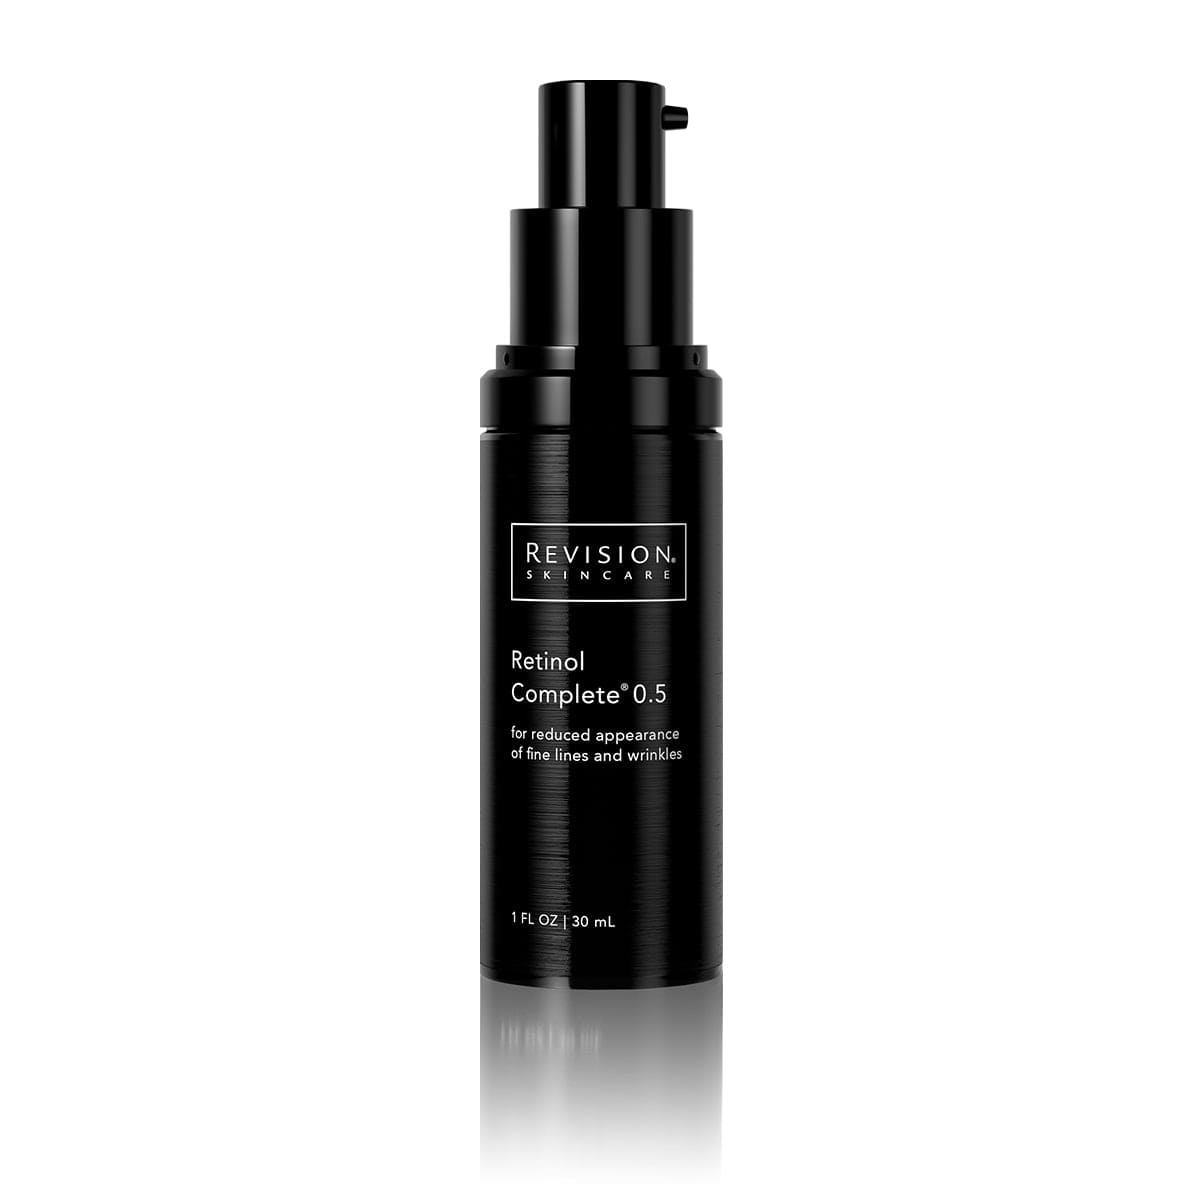 Retinol Complete 0.5- for reduced appearance of fine lines and wrinkles. Pump Front